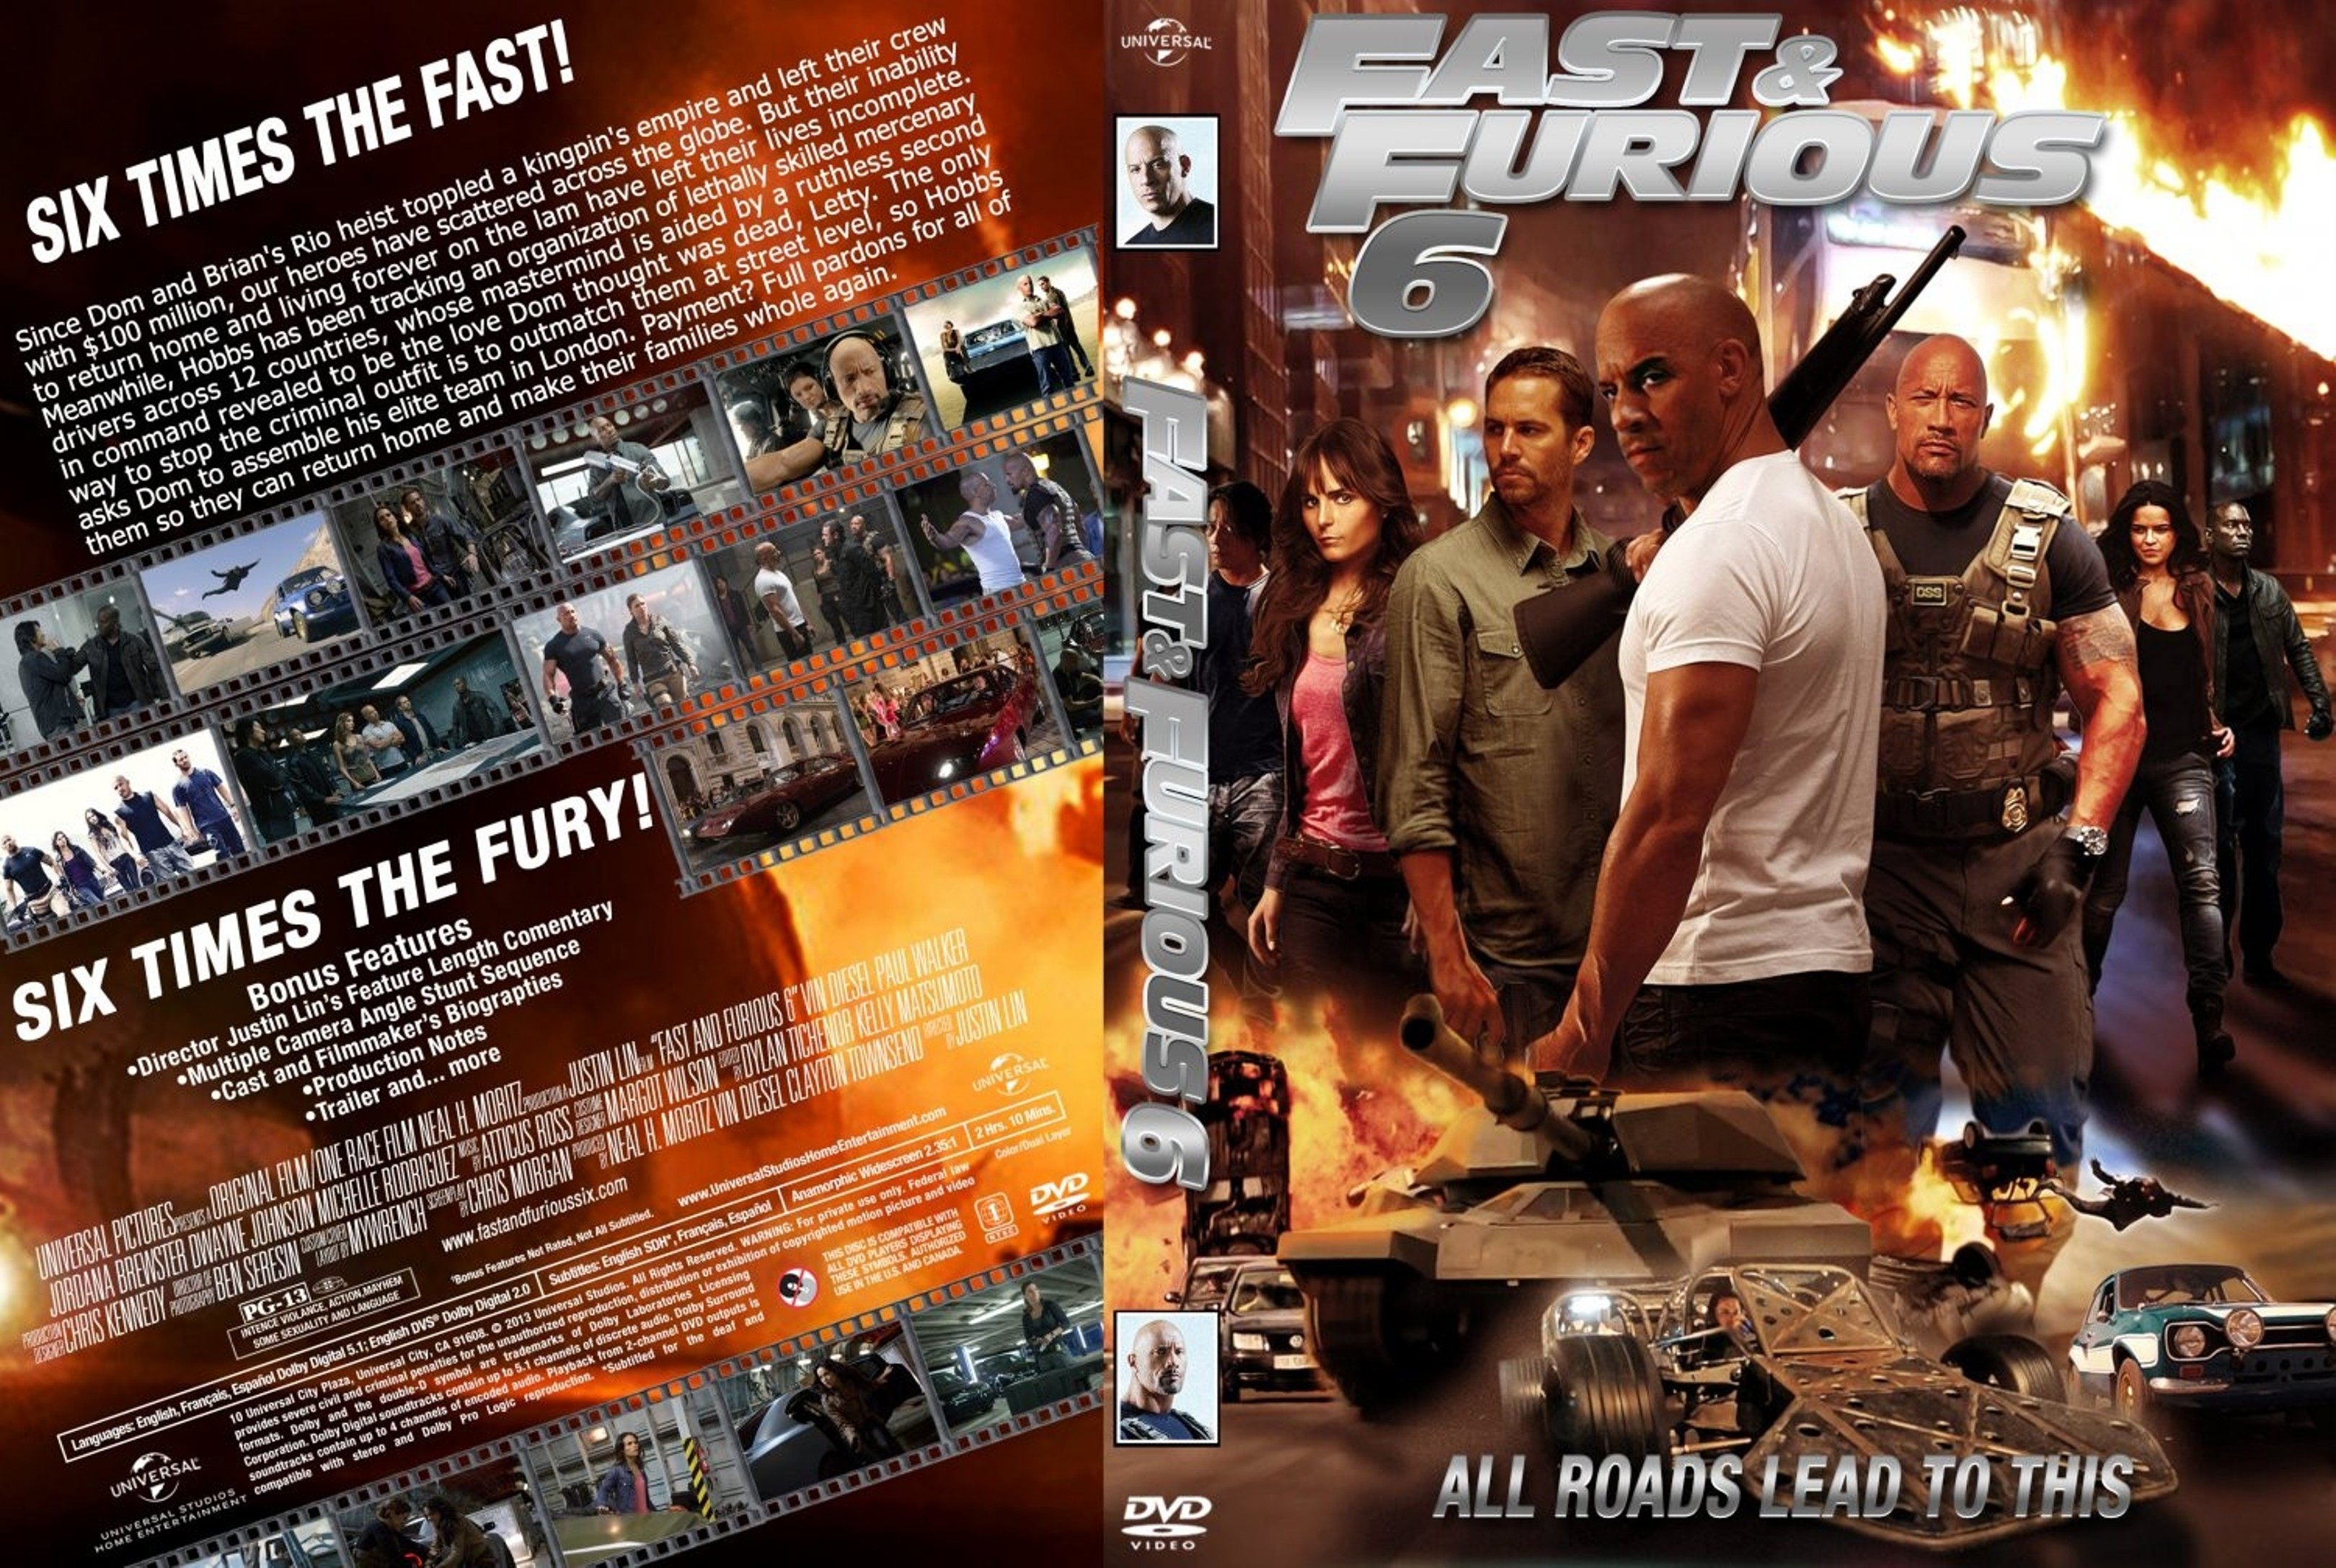 fast and furious 6 movie download in english